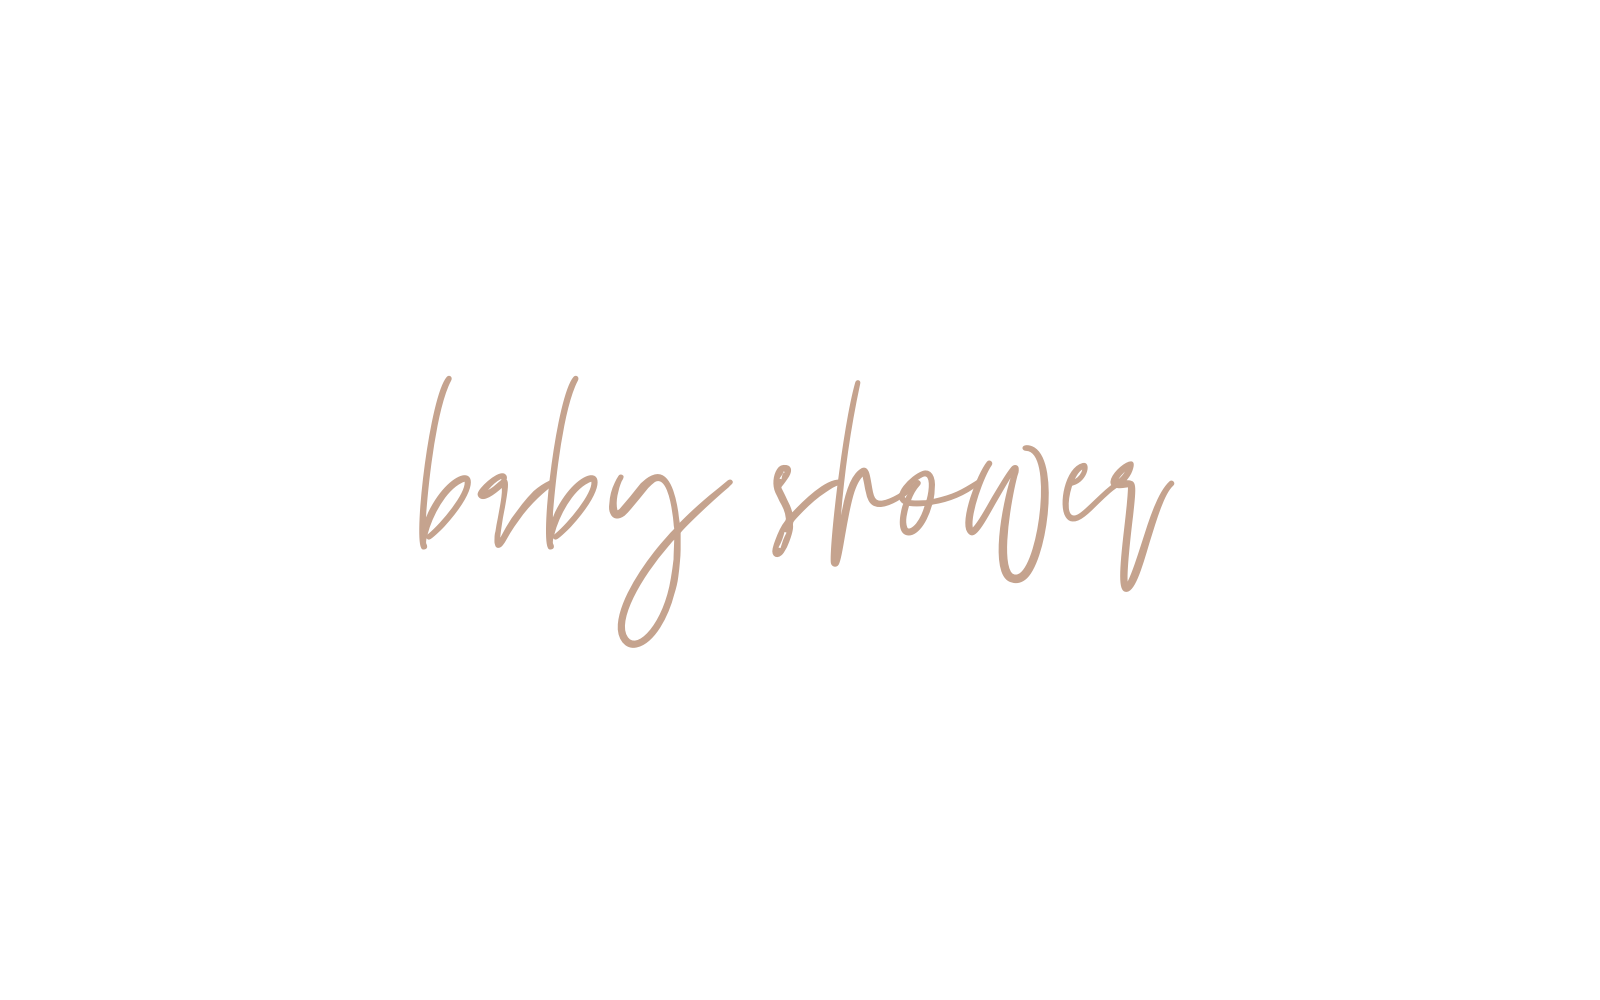 baby shower decal sign party decor